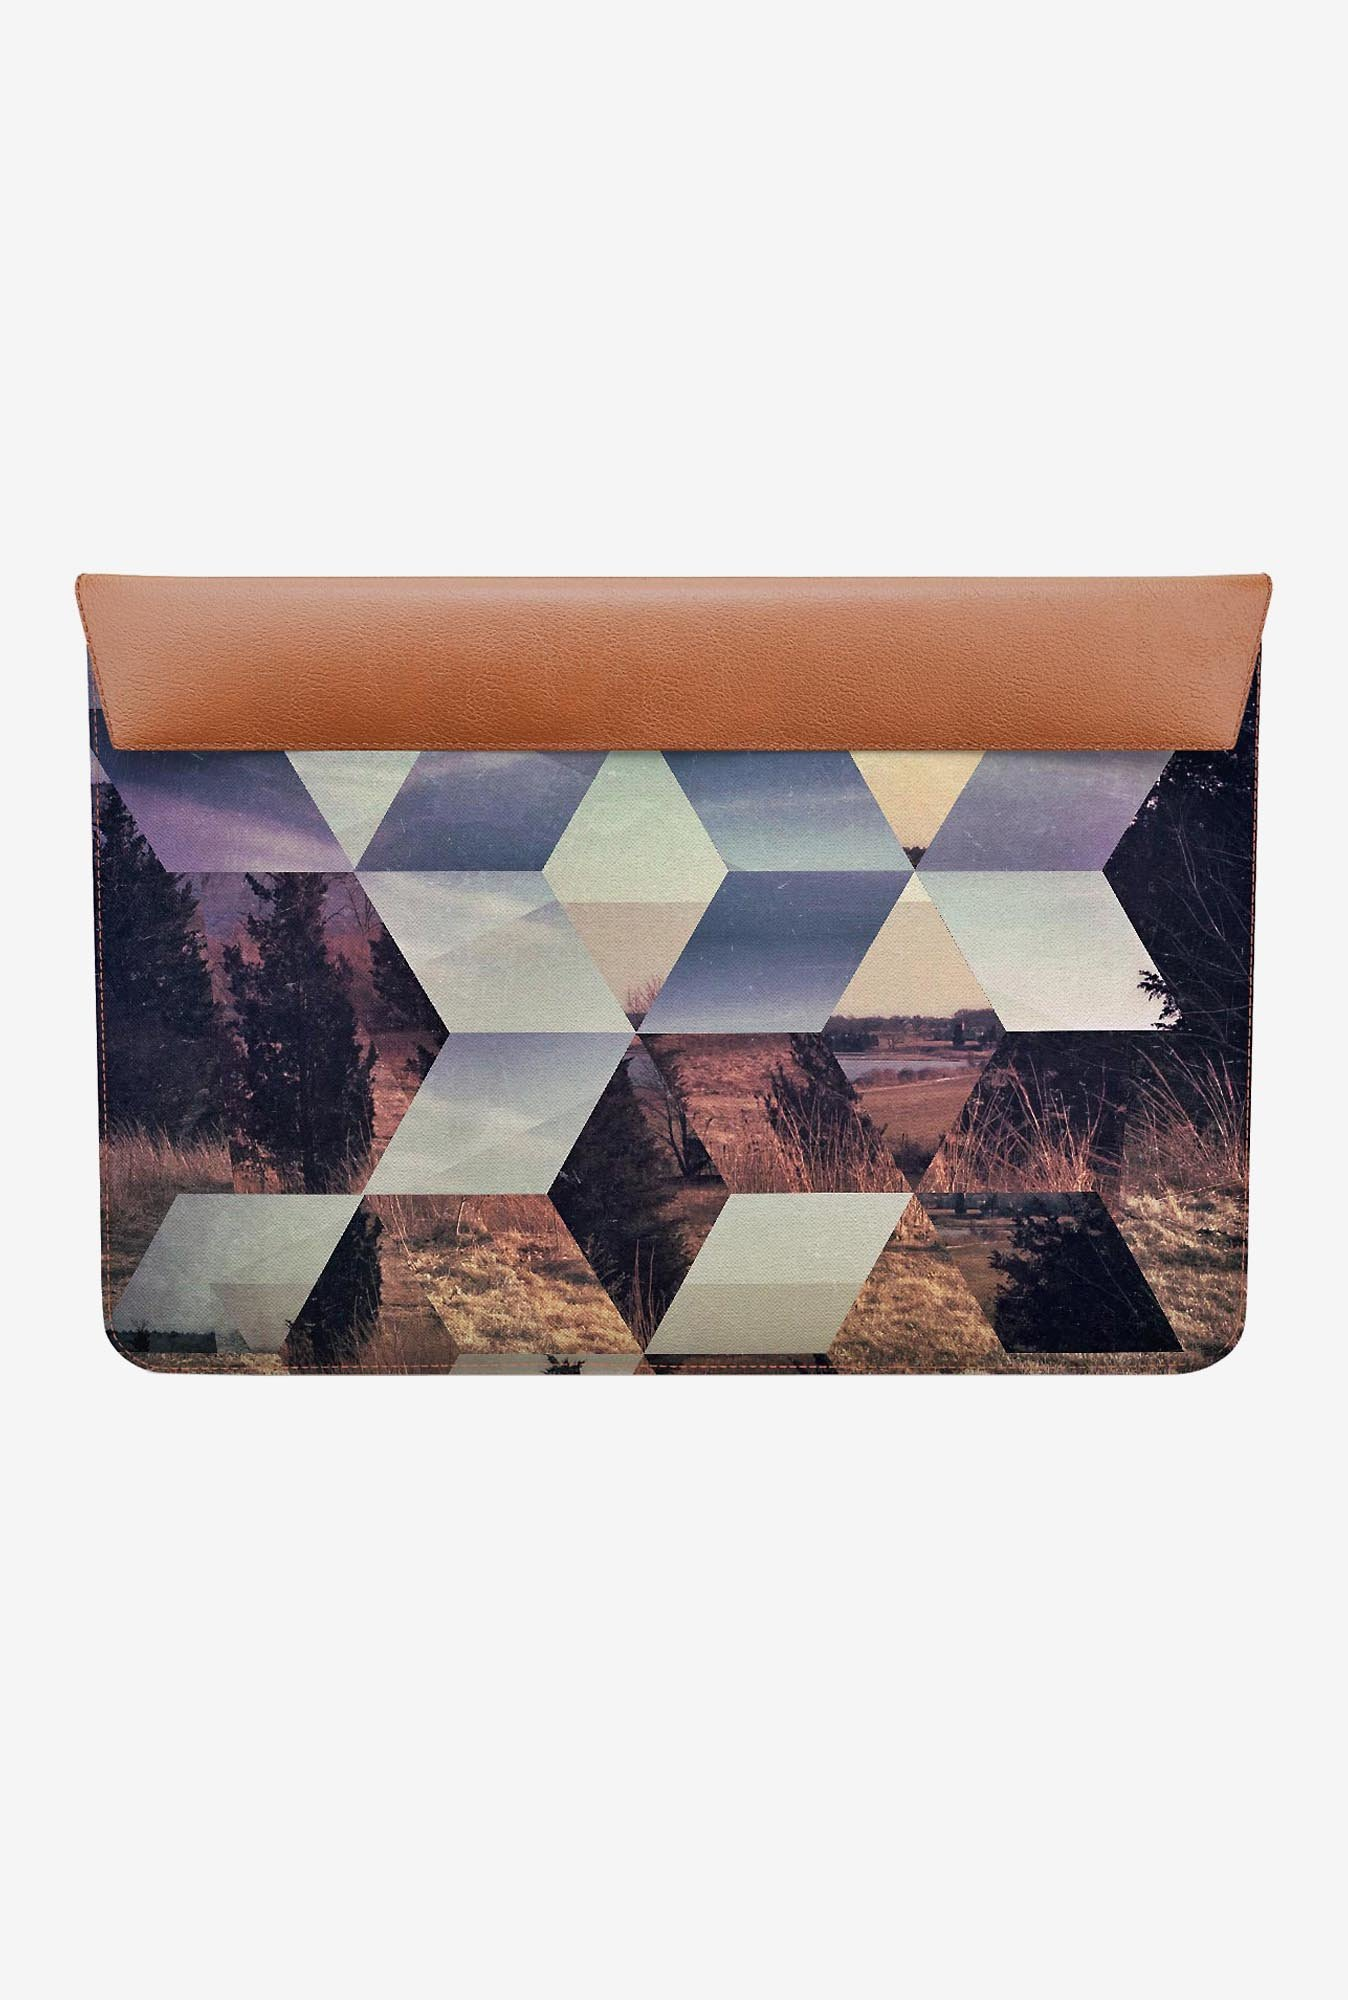 DailyObjects Syylvya Rrkk MacBook Air 11 Envelope Sleeve